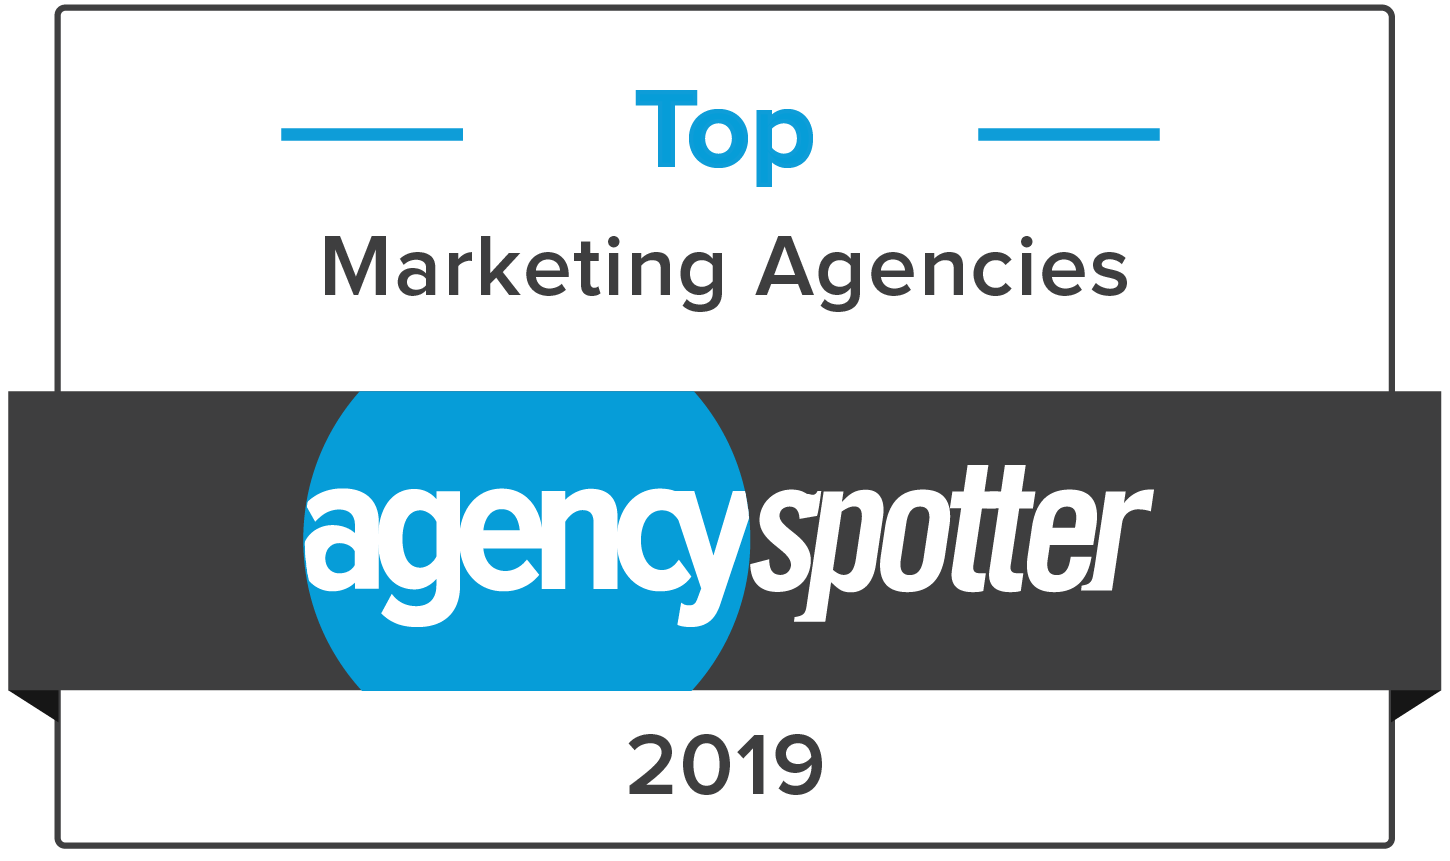 Marketing agencies 2019 8b4c756aa74a66dd2f325533a2154993db4f87954df1963f5f2bf9df1dc7a754